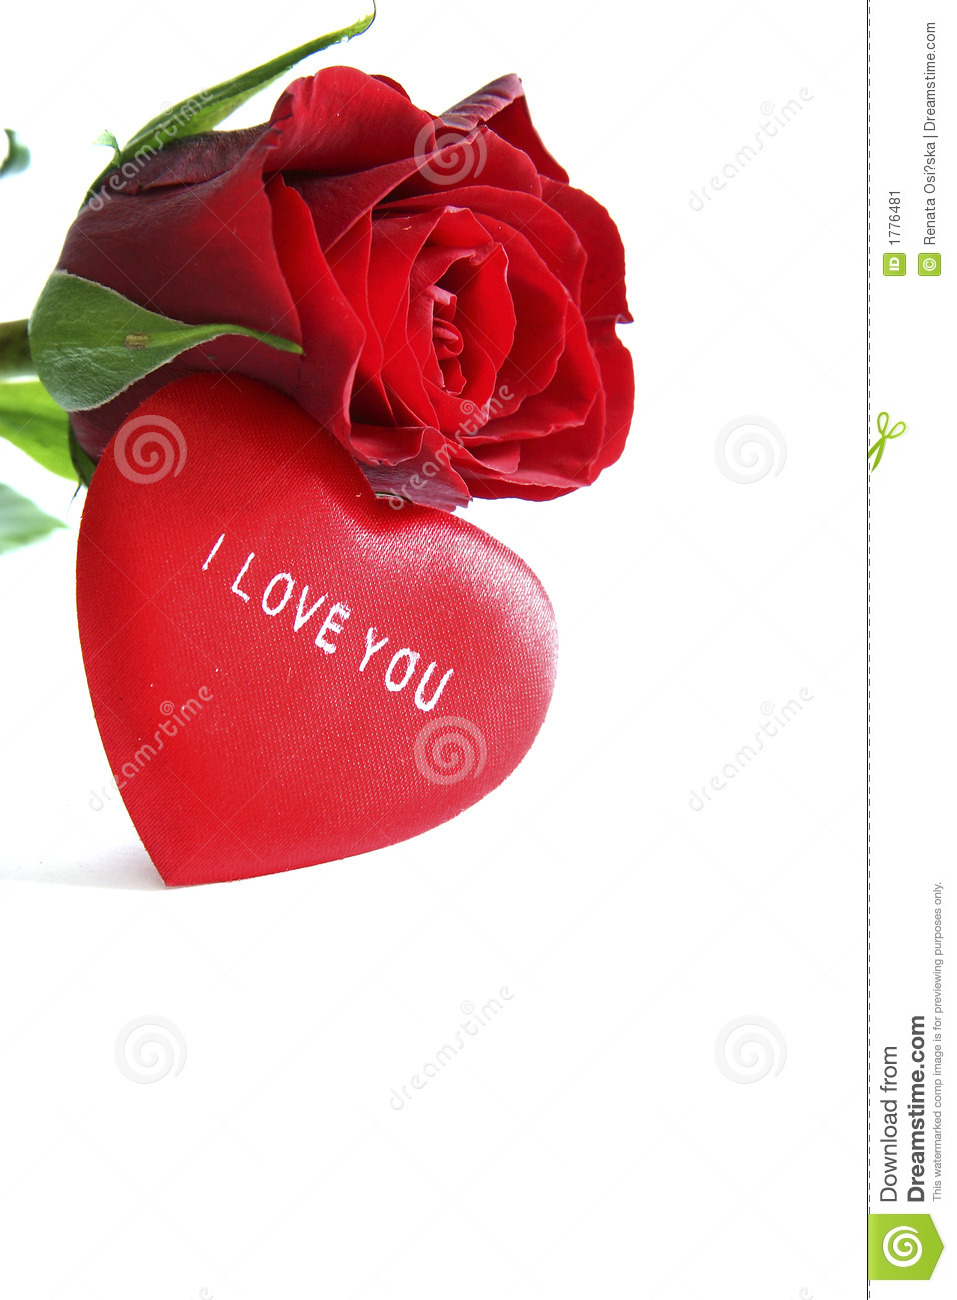 Red Rose And Heart Stock Image Image Of White Love Romance 1776481